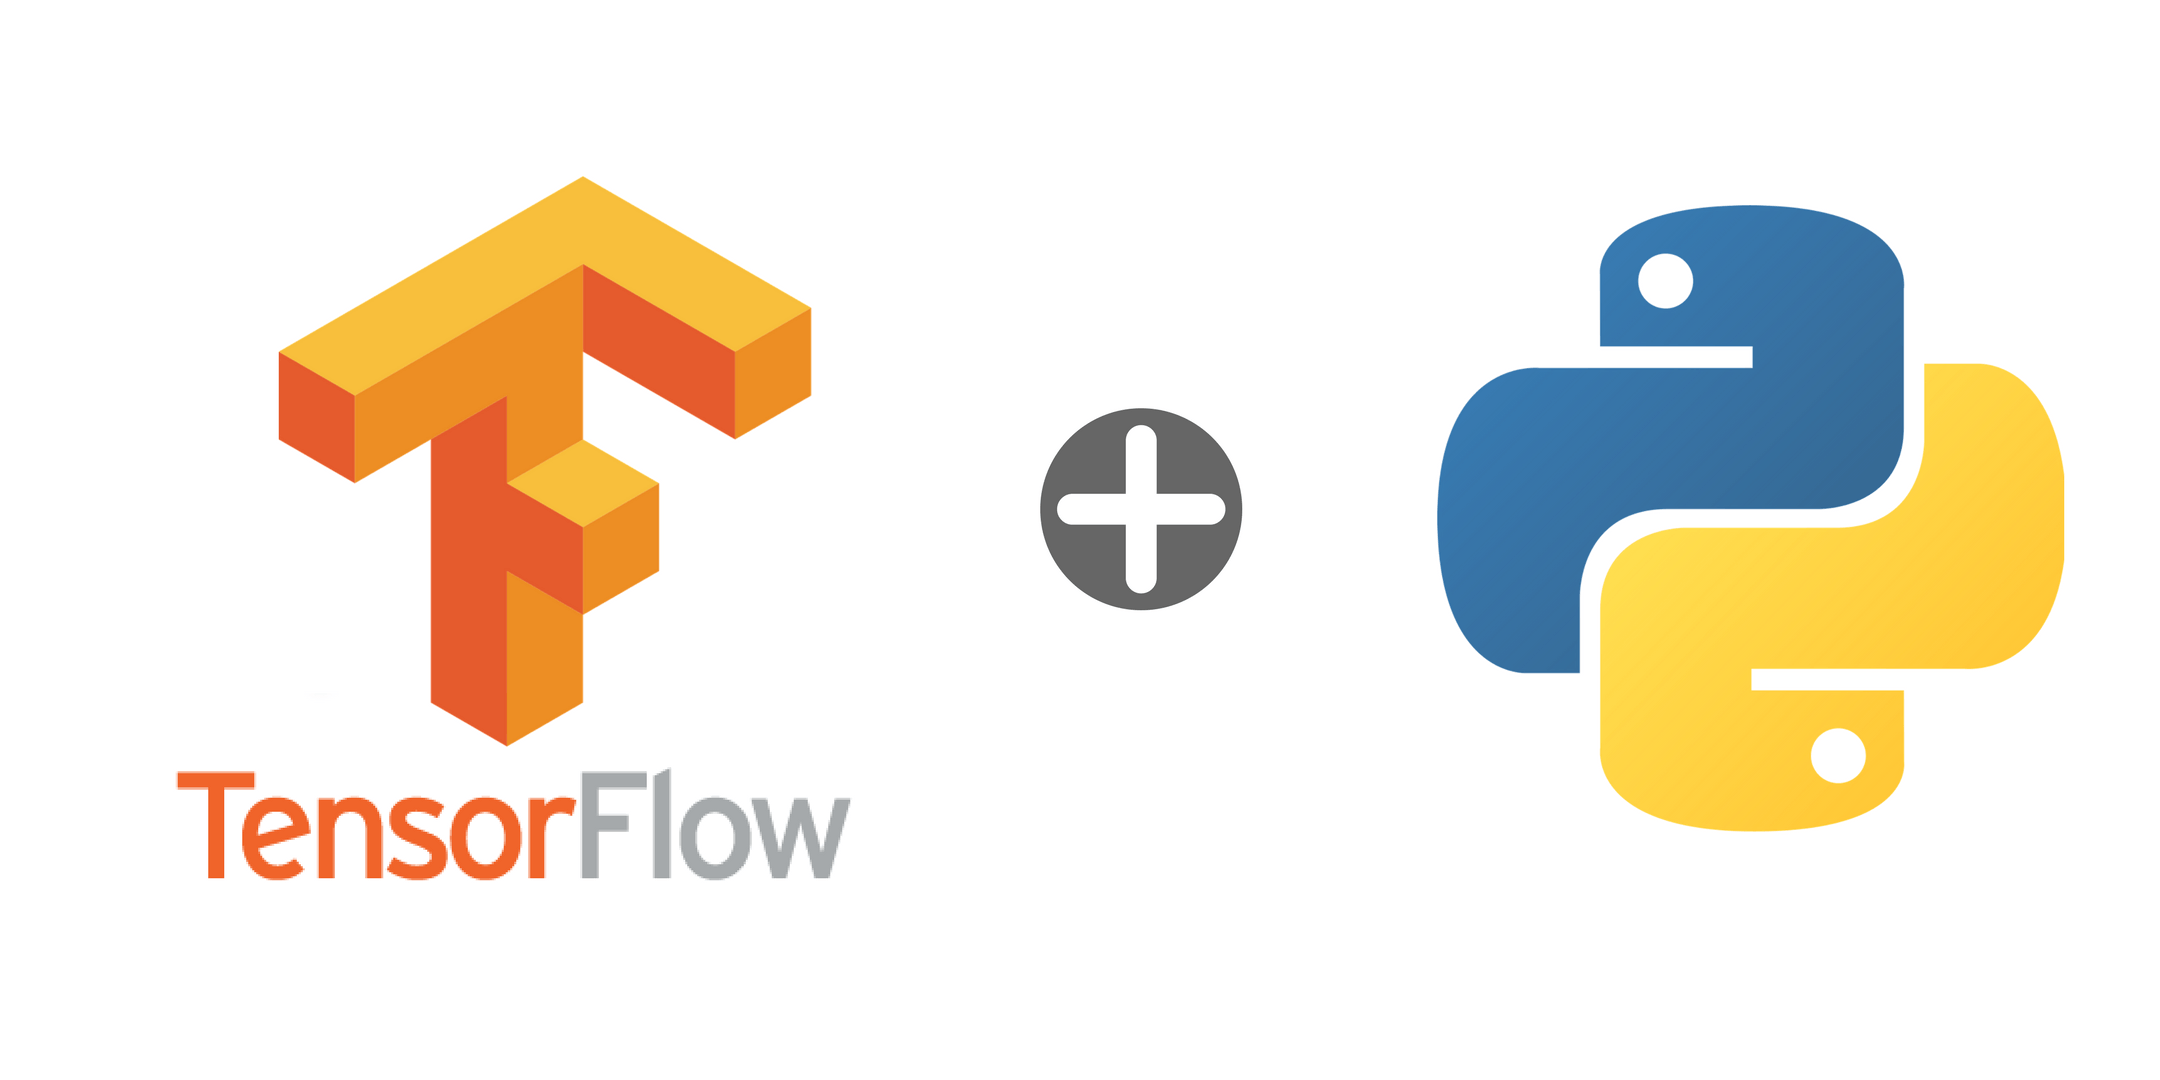 Deep Learning Training Bootcamp - Hands-On with Python, TensorFlow | Live Instructor-Led Classes | Certification & Projects Included | 100% Moneyback Guarantee | Dublin, Ireland